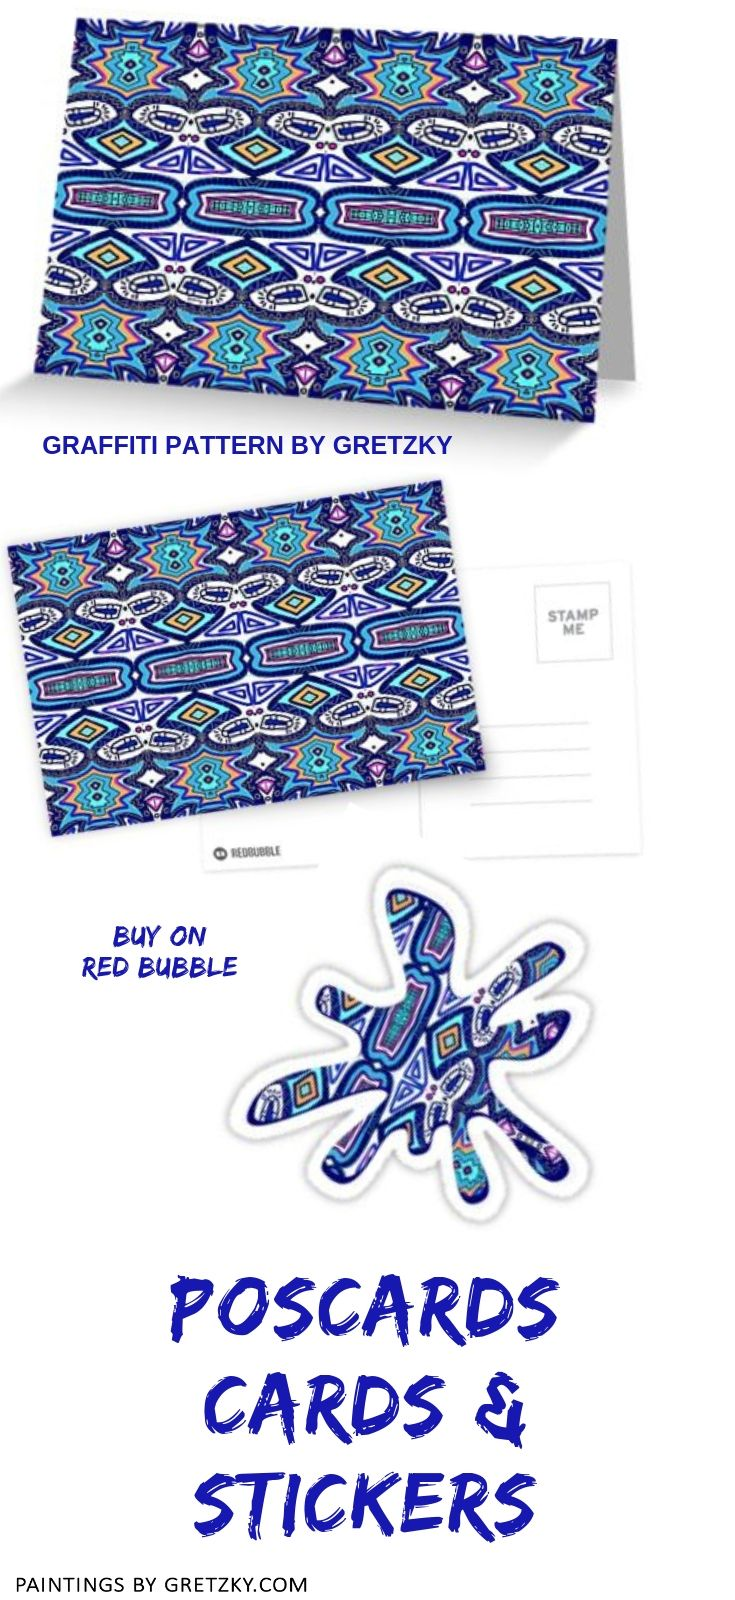 Graffiti Pattern Greeting Card By Gretzky Notebooks Cards And